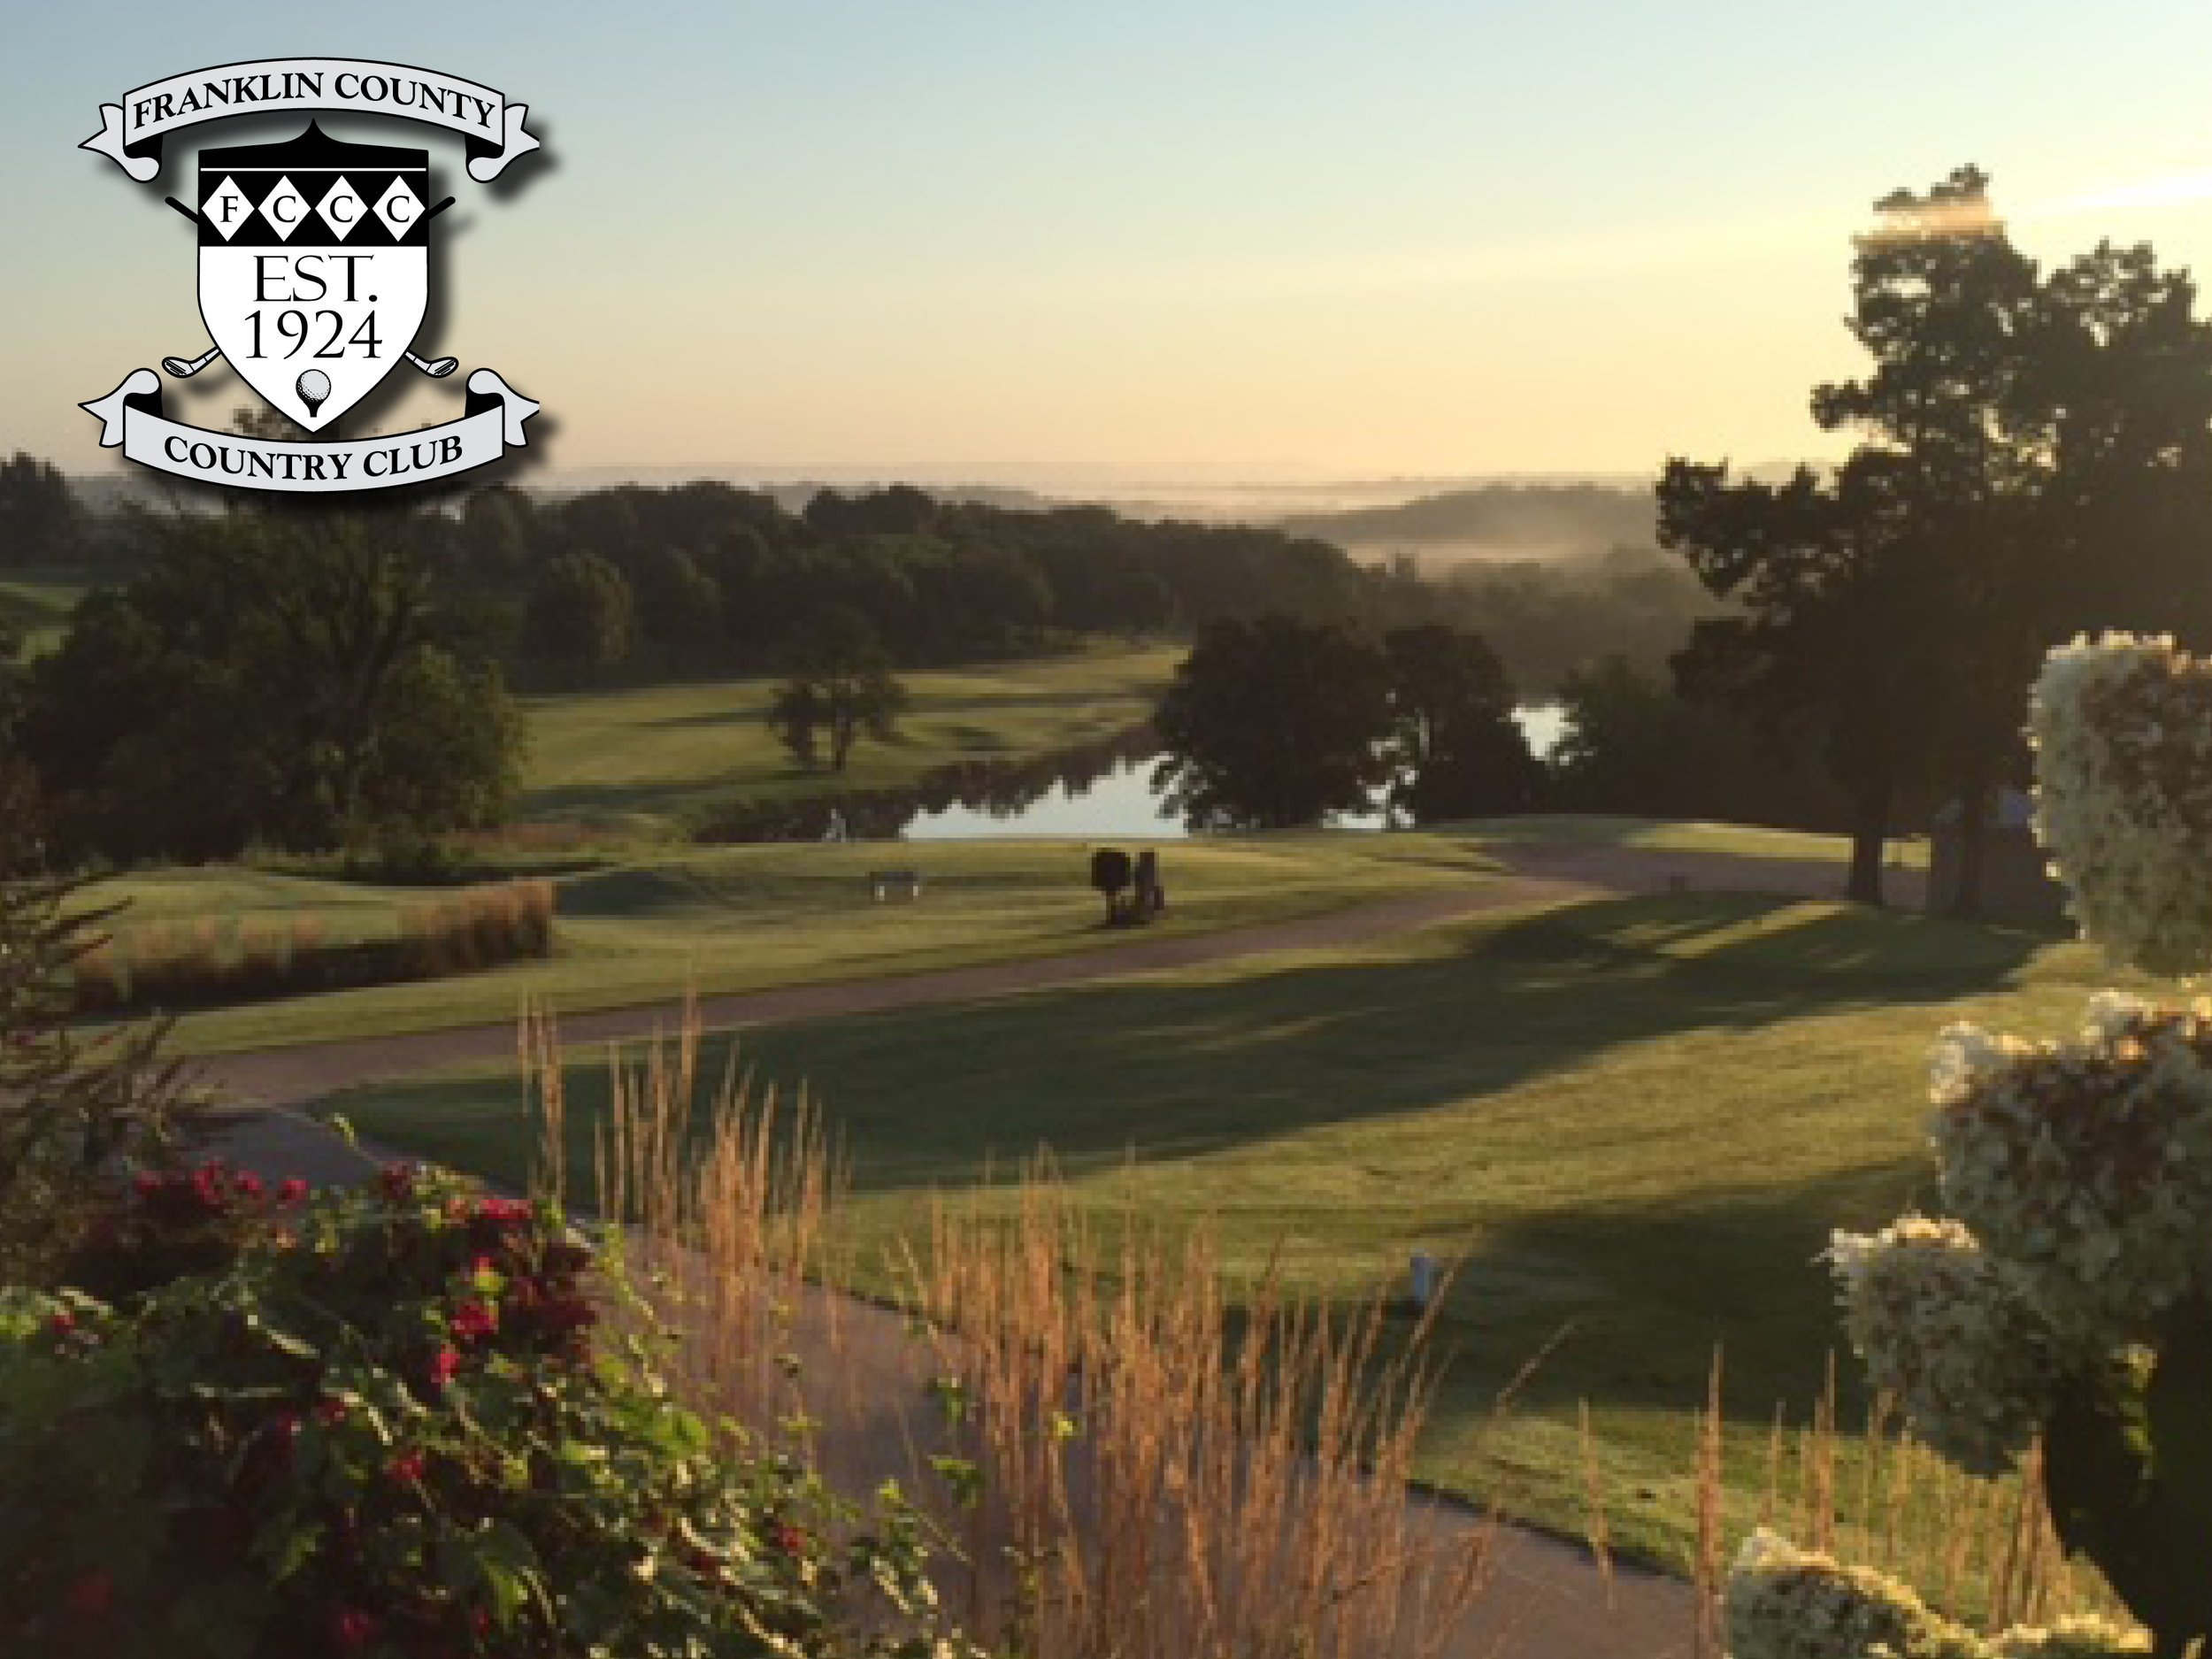 WASHINGTON, MO | Playoff Event #2 | PRIVATE CLUB - Franklin County Country ClubSunday, September 8th$115